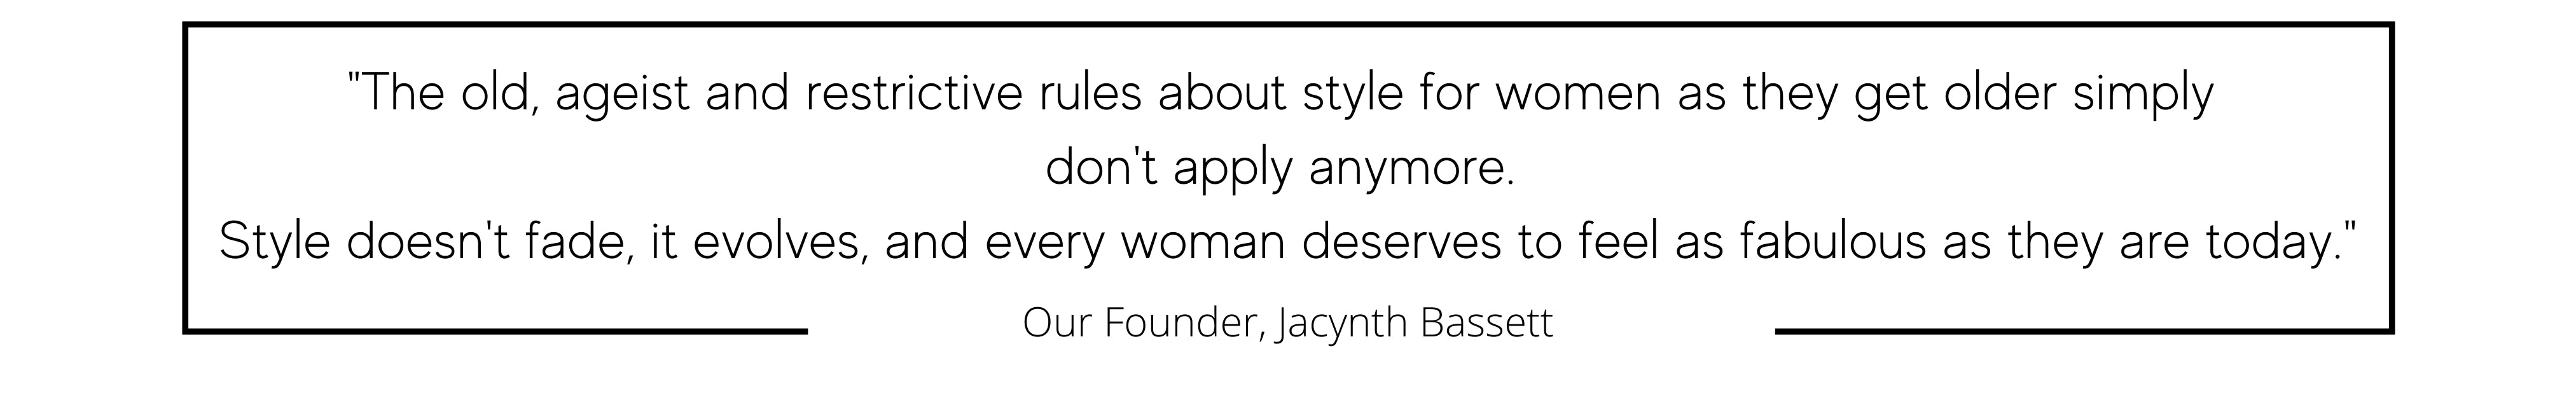 """The old, ageist and restrictive rules about style for women as they get older simply  don't apply anymore.  Style doesn't fade, it evolves, and every woman deserves to feel as fabulous as they are today."""